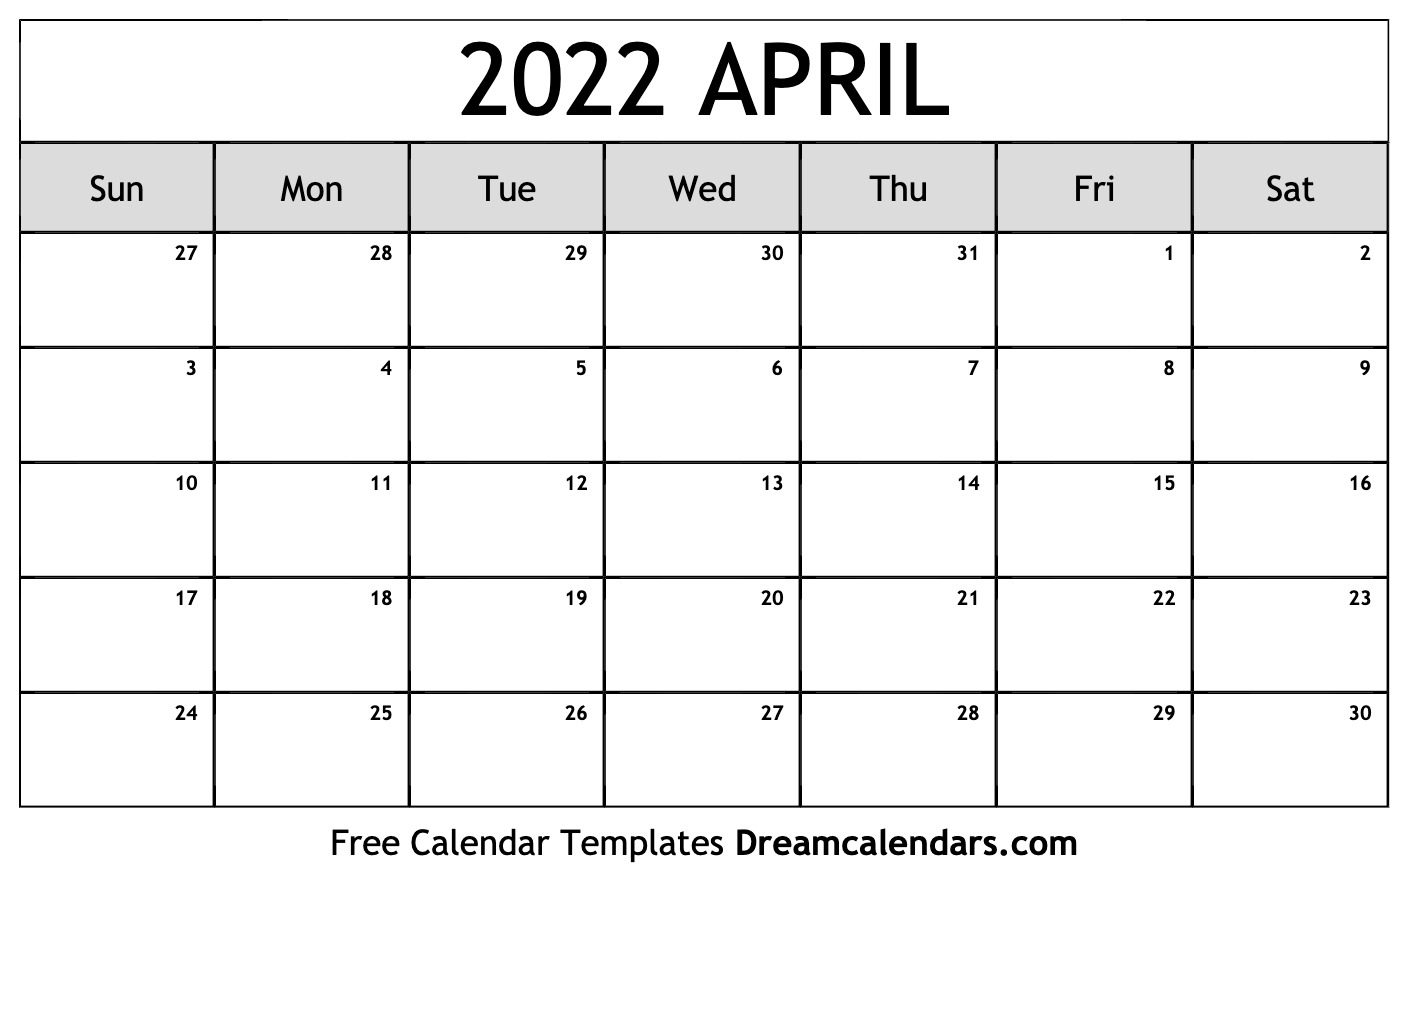 image regarding 2022 Calendar Printable identify Printable April 2022 Calendar